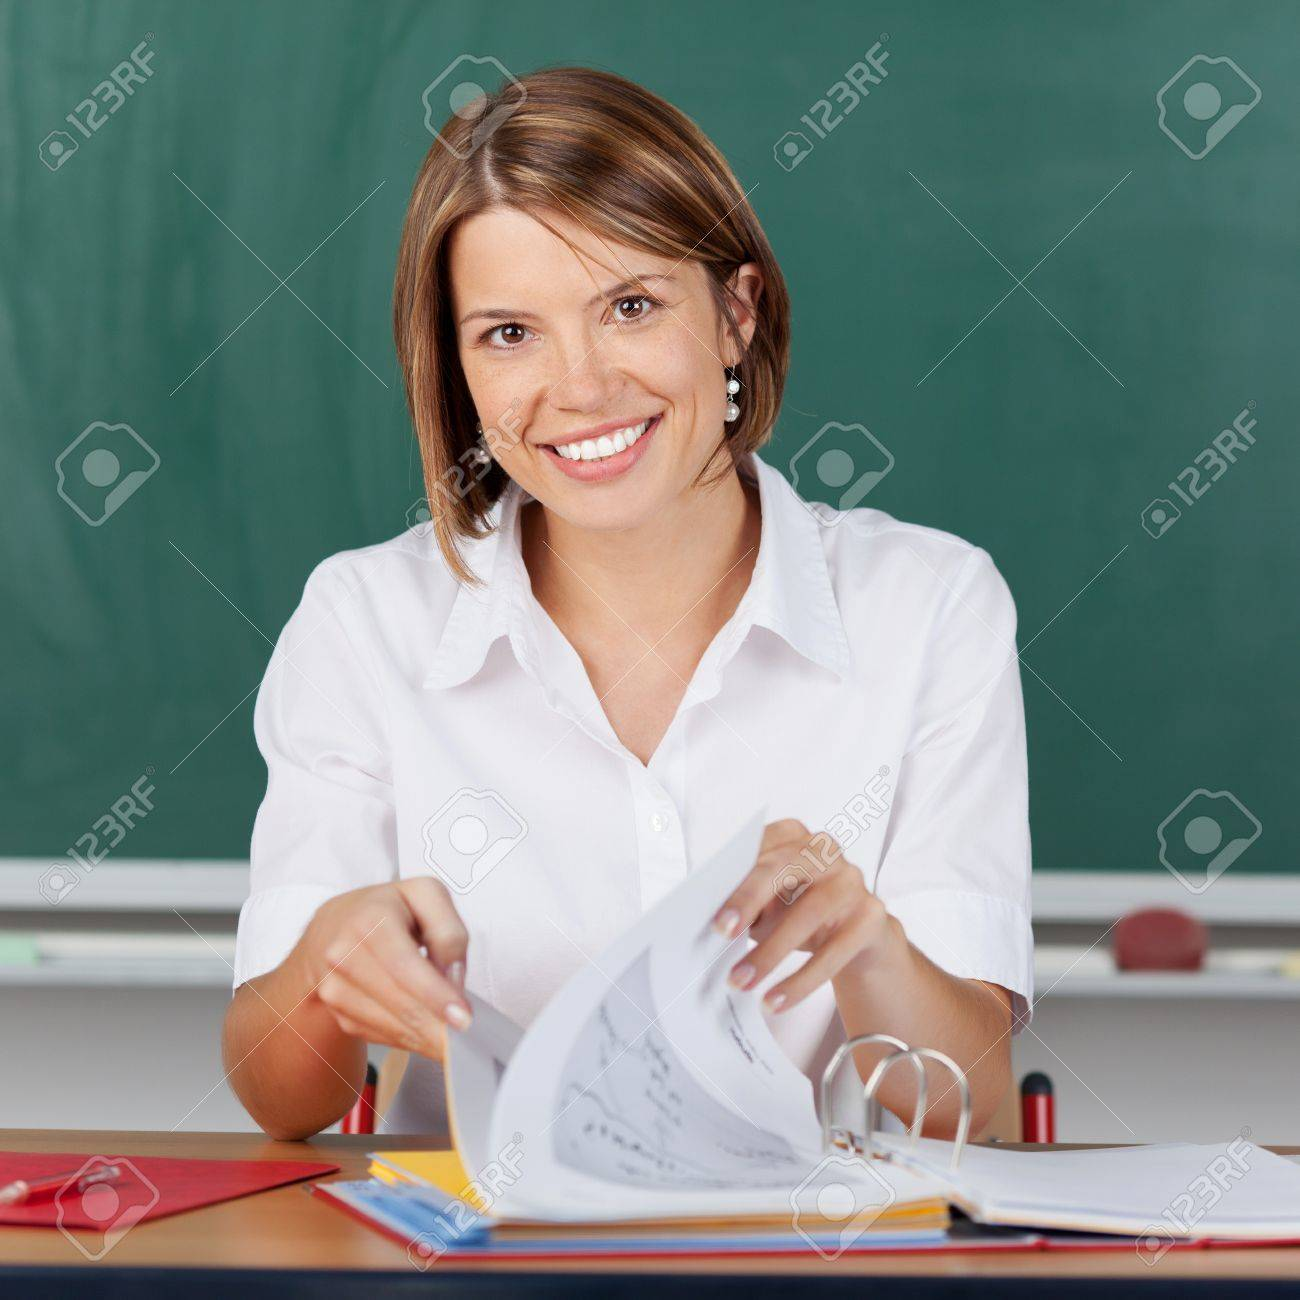 Smiling teacher checking her notes for class paging through pages in a large file while sitting in front of a blackboard Stock Photo - 21148083